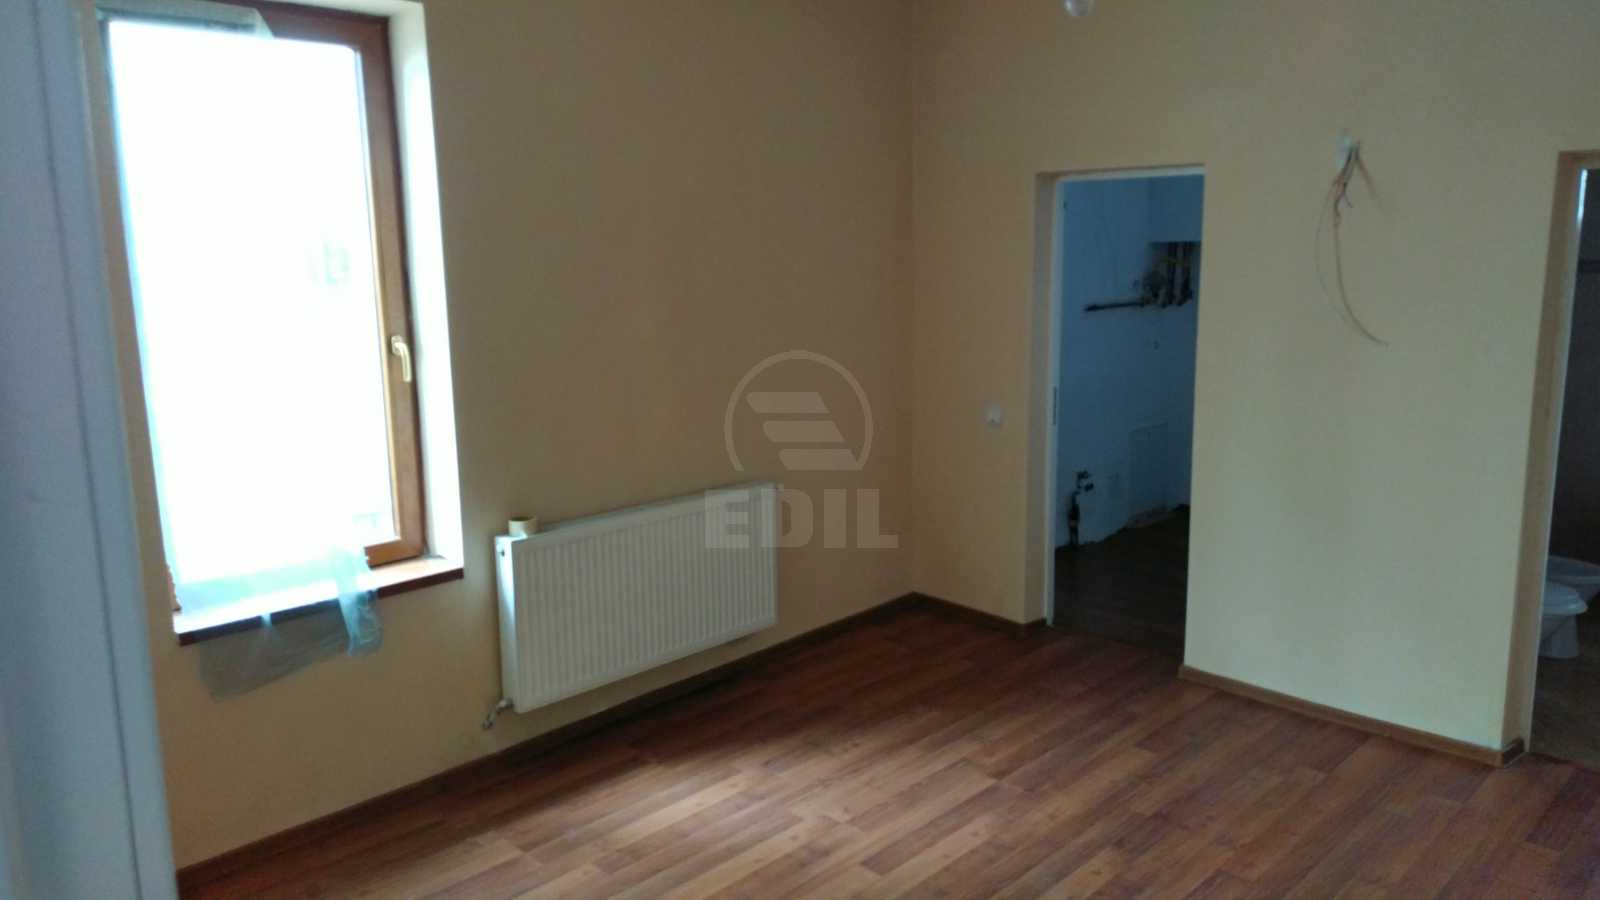 House for rent 3 rooms, CACJ284919-3